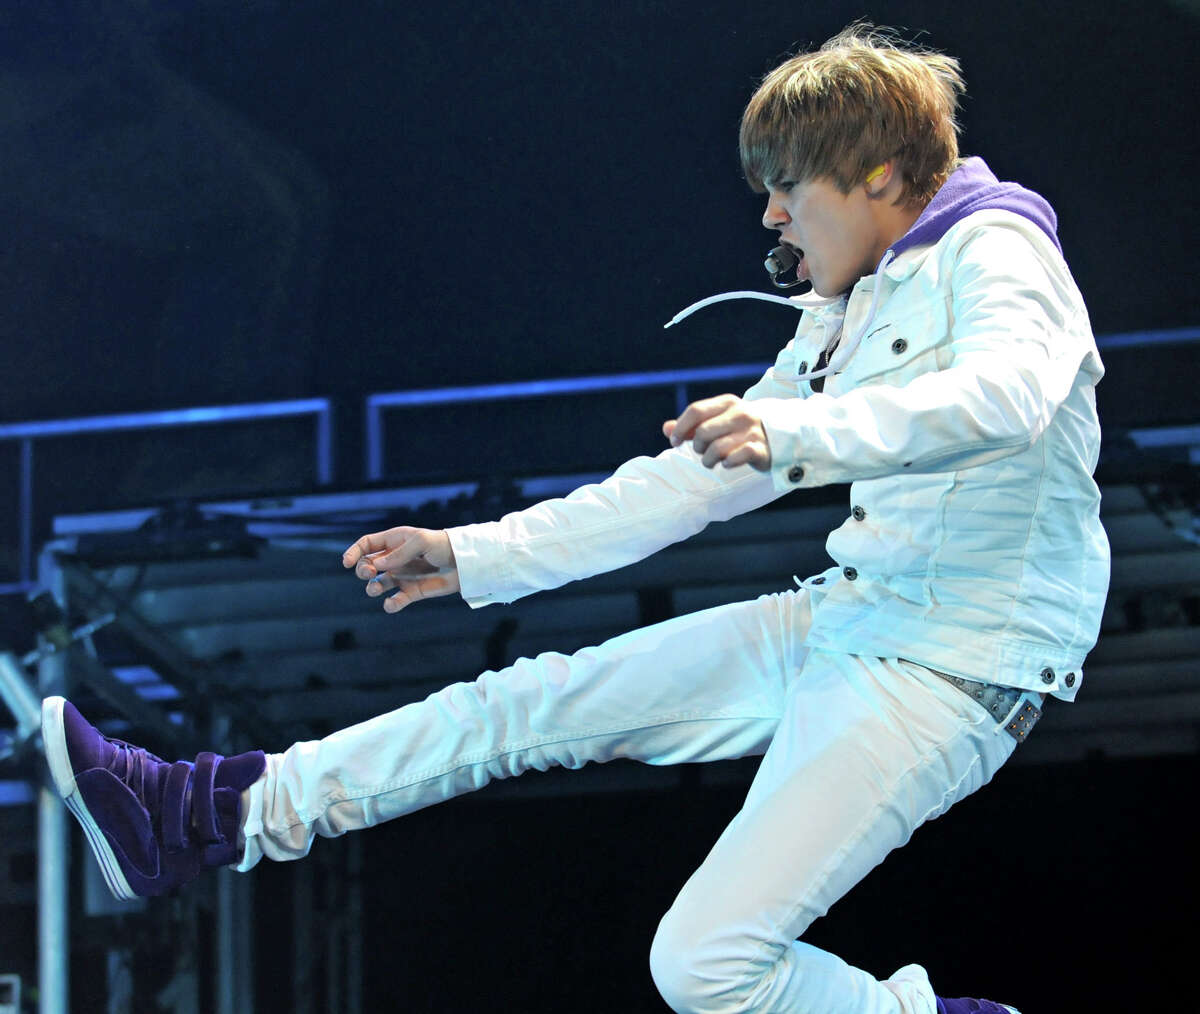 Singer Justin Bieber performs at the Times Union Center in Albany, NY on August 25, 2010. (Lori Van Buren / Times Union)